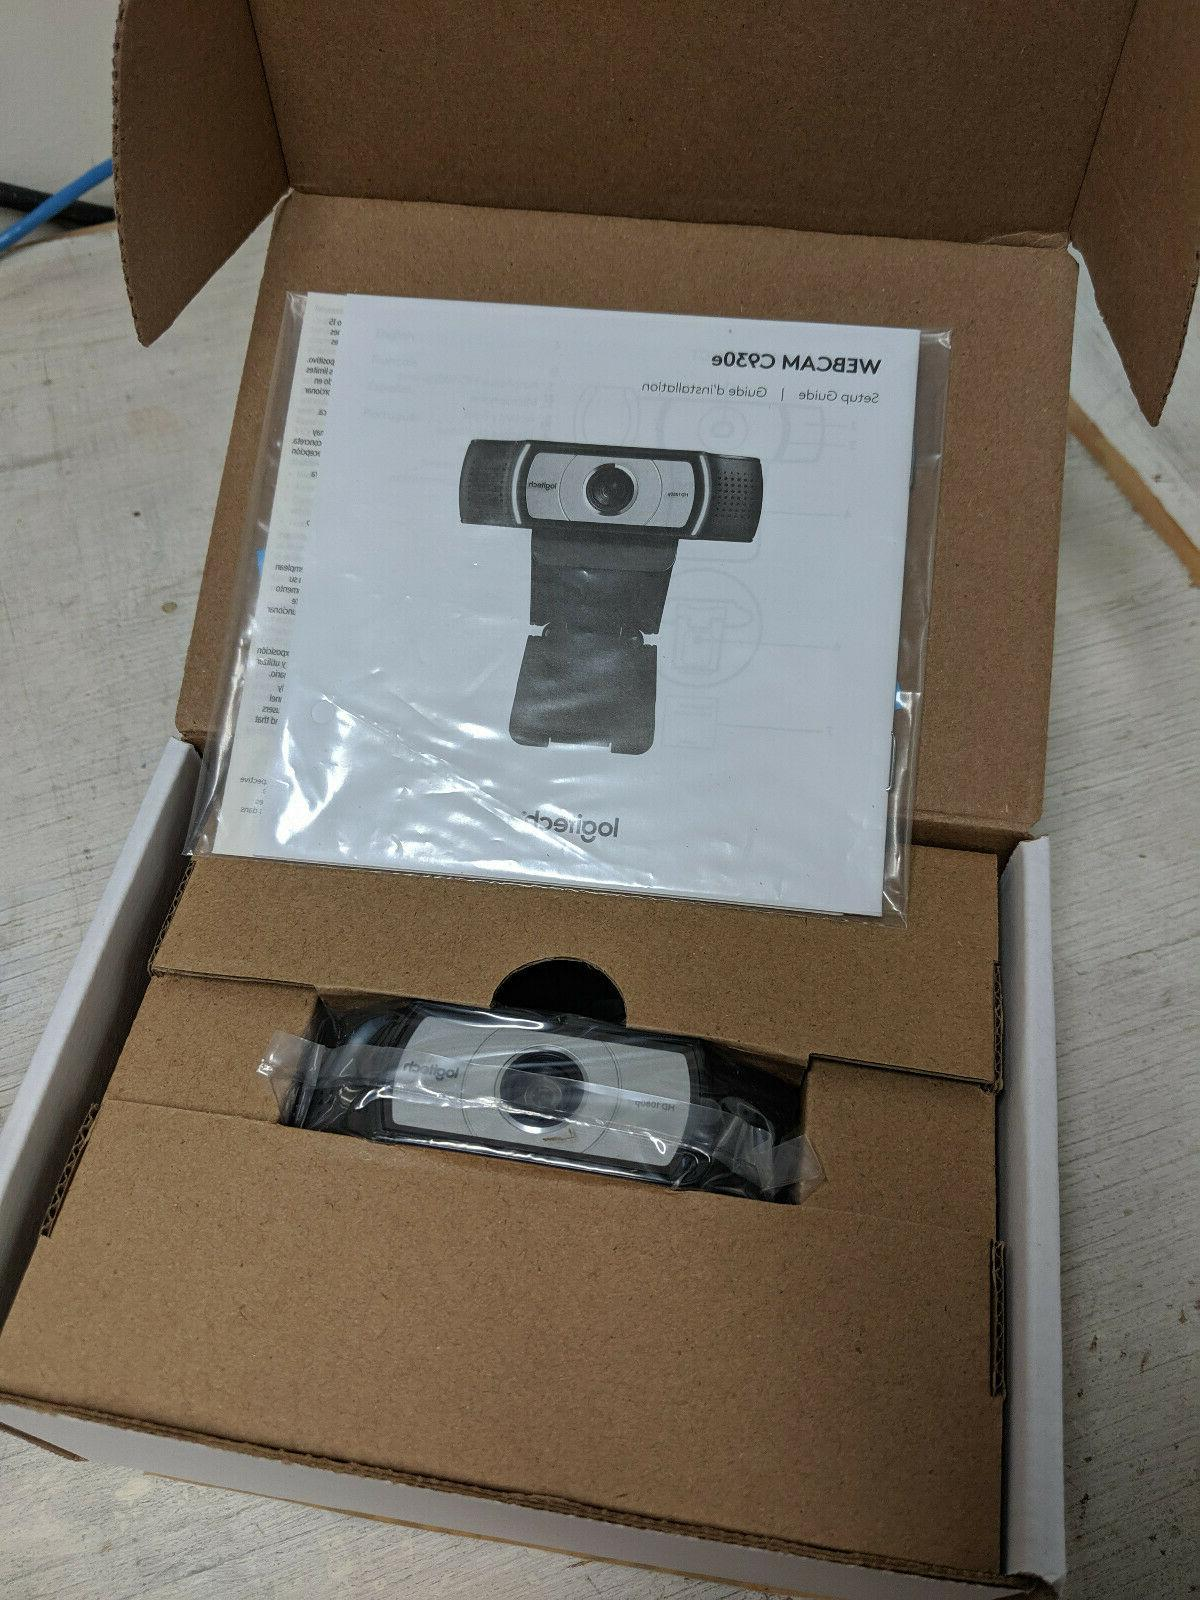 c930e 1080p hd video webcam 90 degree